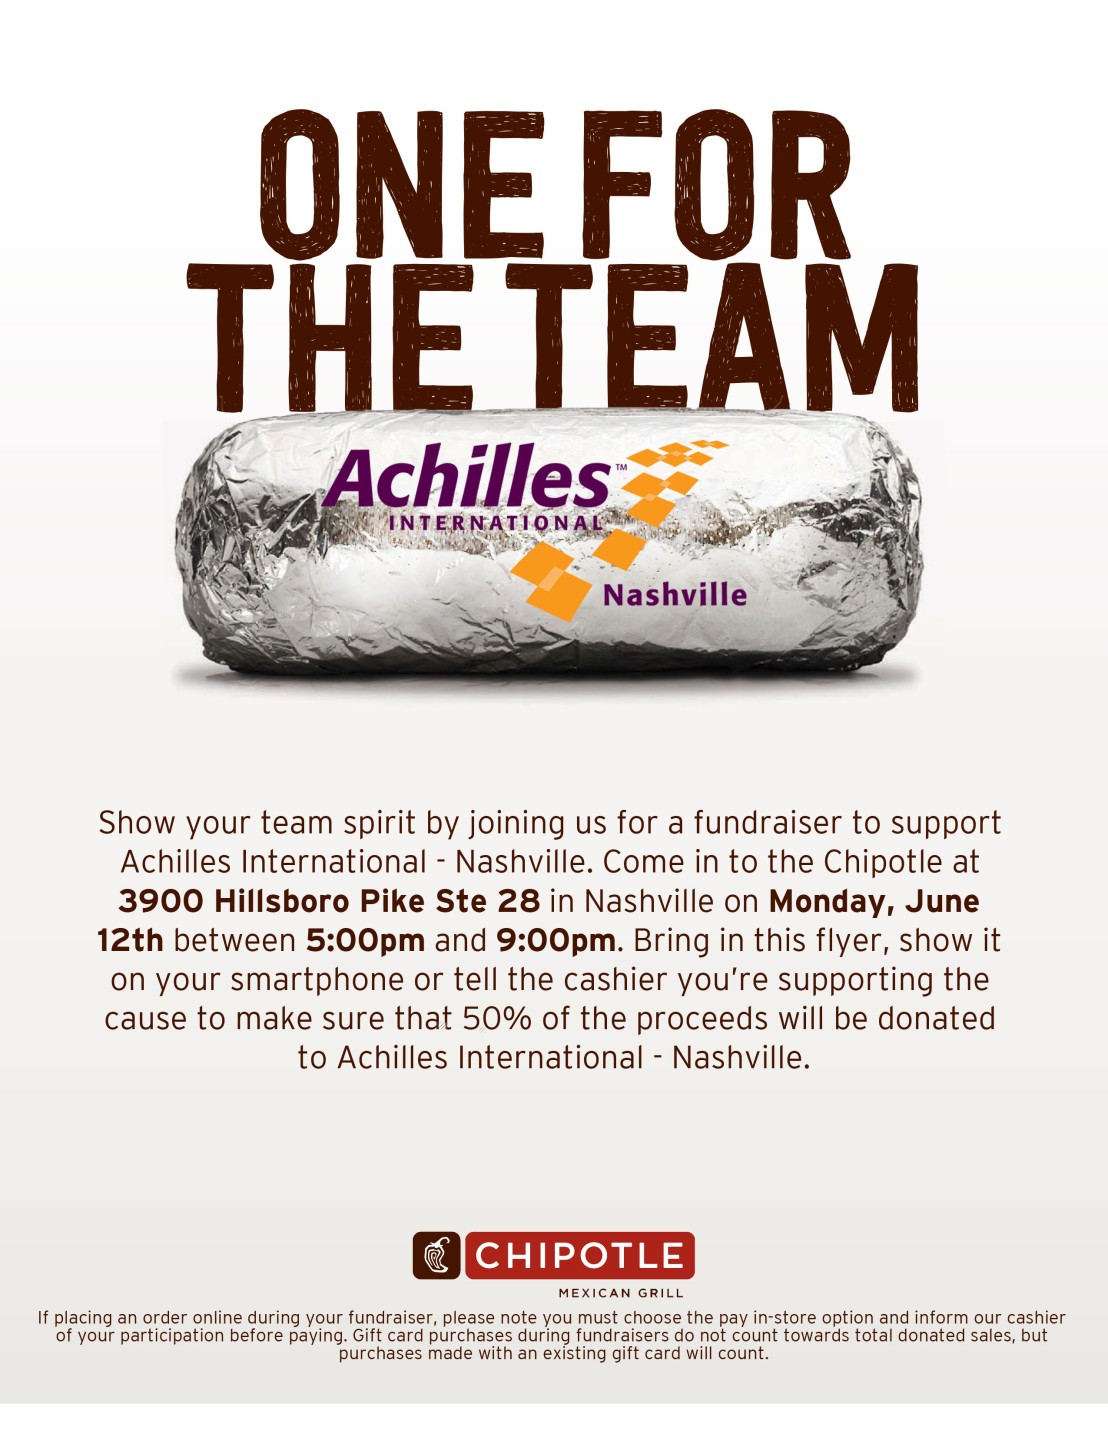 JPG file from Chipotle that has the address for the fundraiser, 3900 Hillsboro Pike, Ste 28, show this between 5 and 9 p.m. for 50% to go to Achilles.